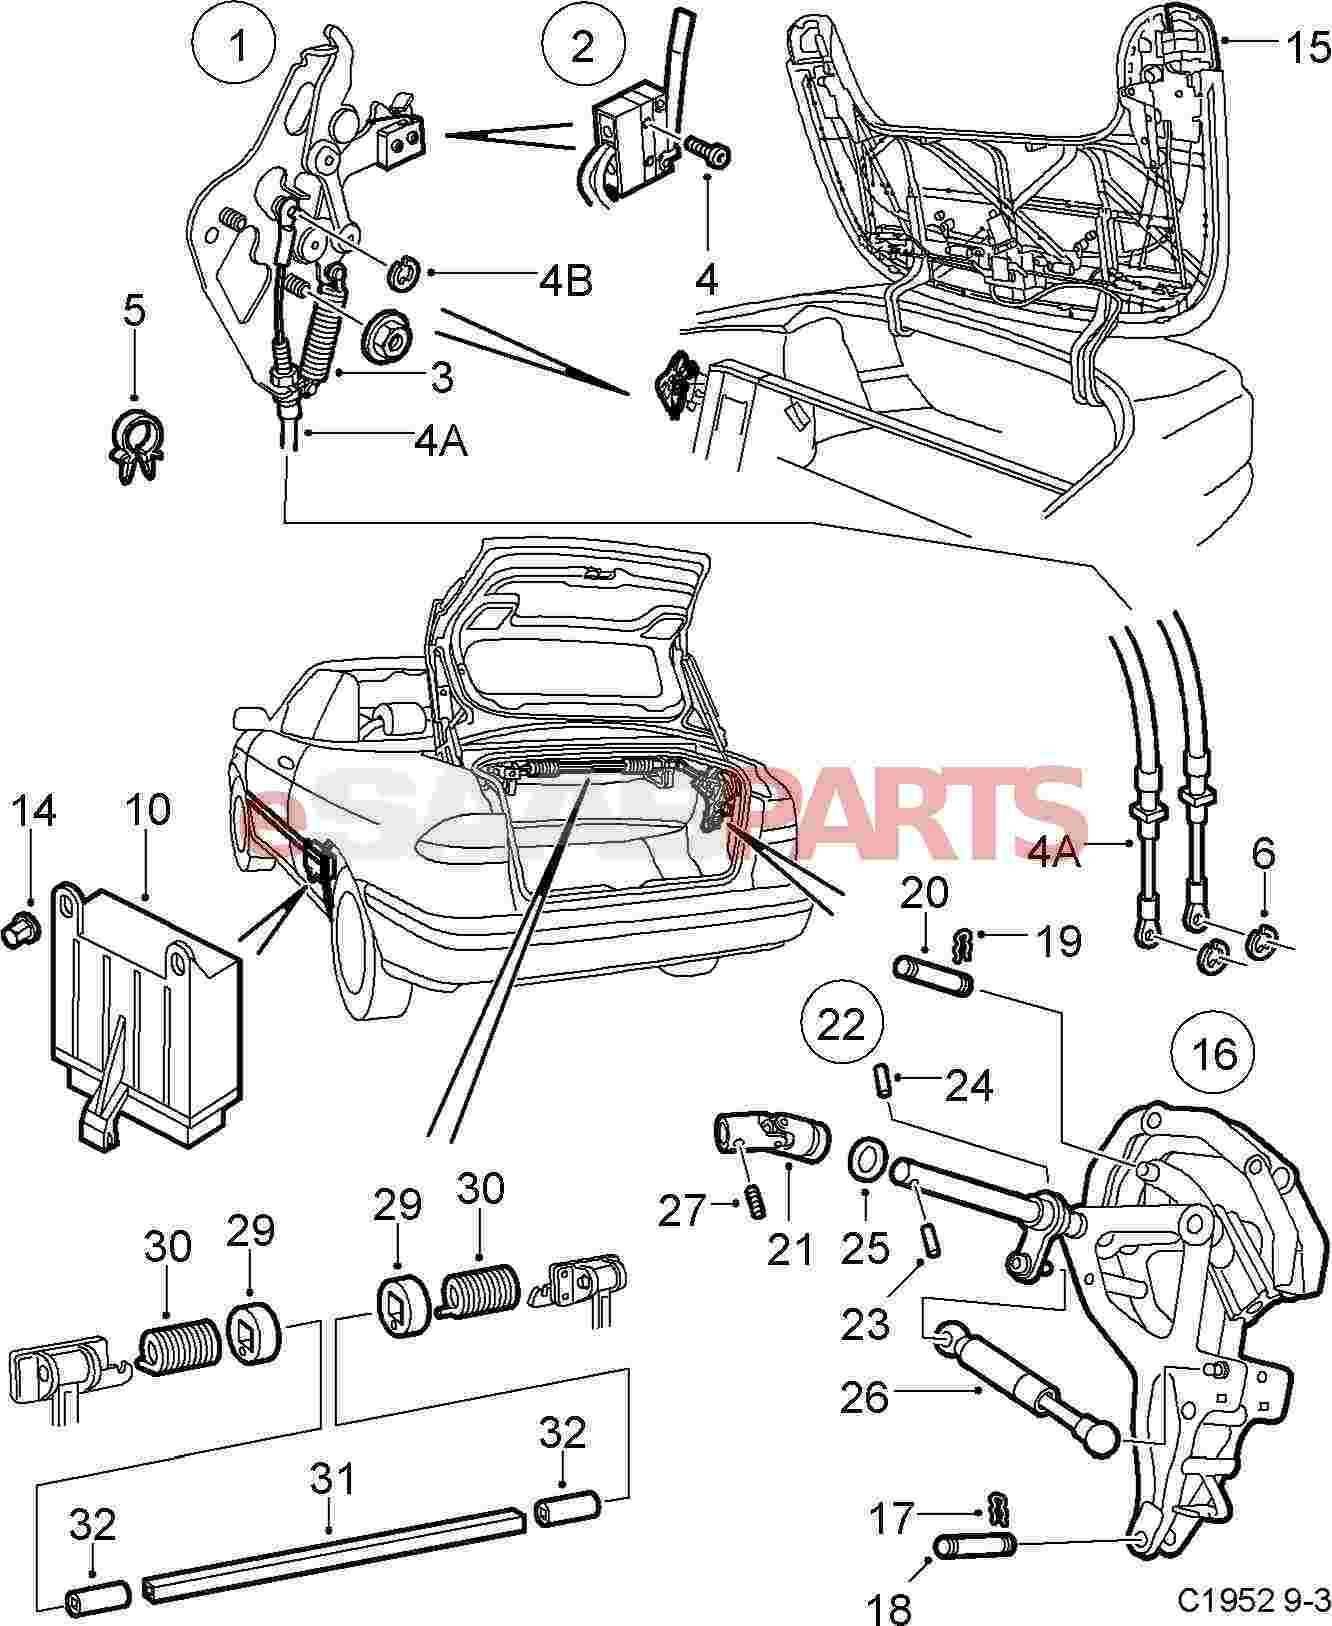 2002 Saab 9 3 Wiring Diagrams on 2004 saab 9 3 convertible radio wiring